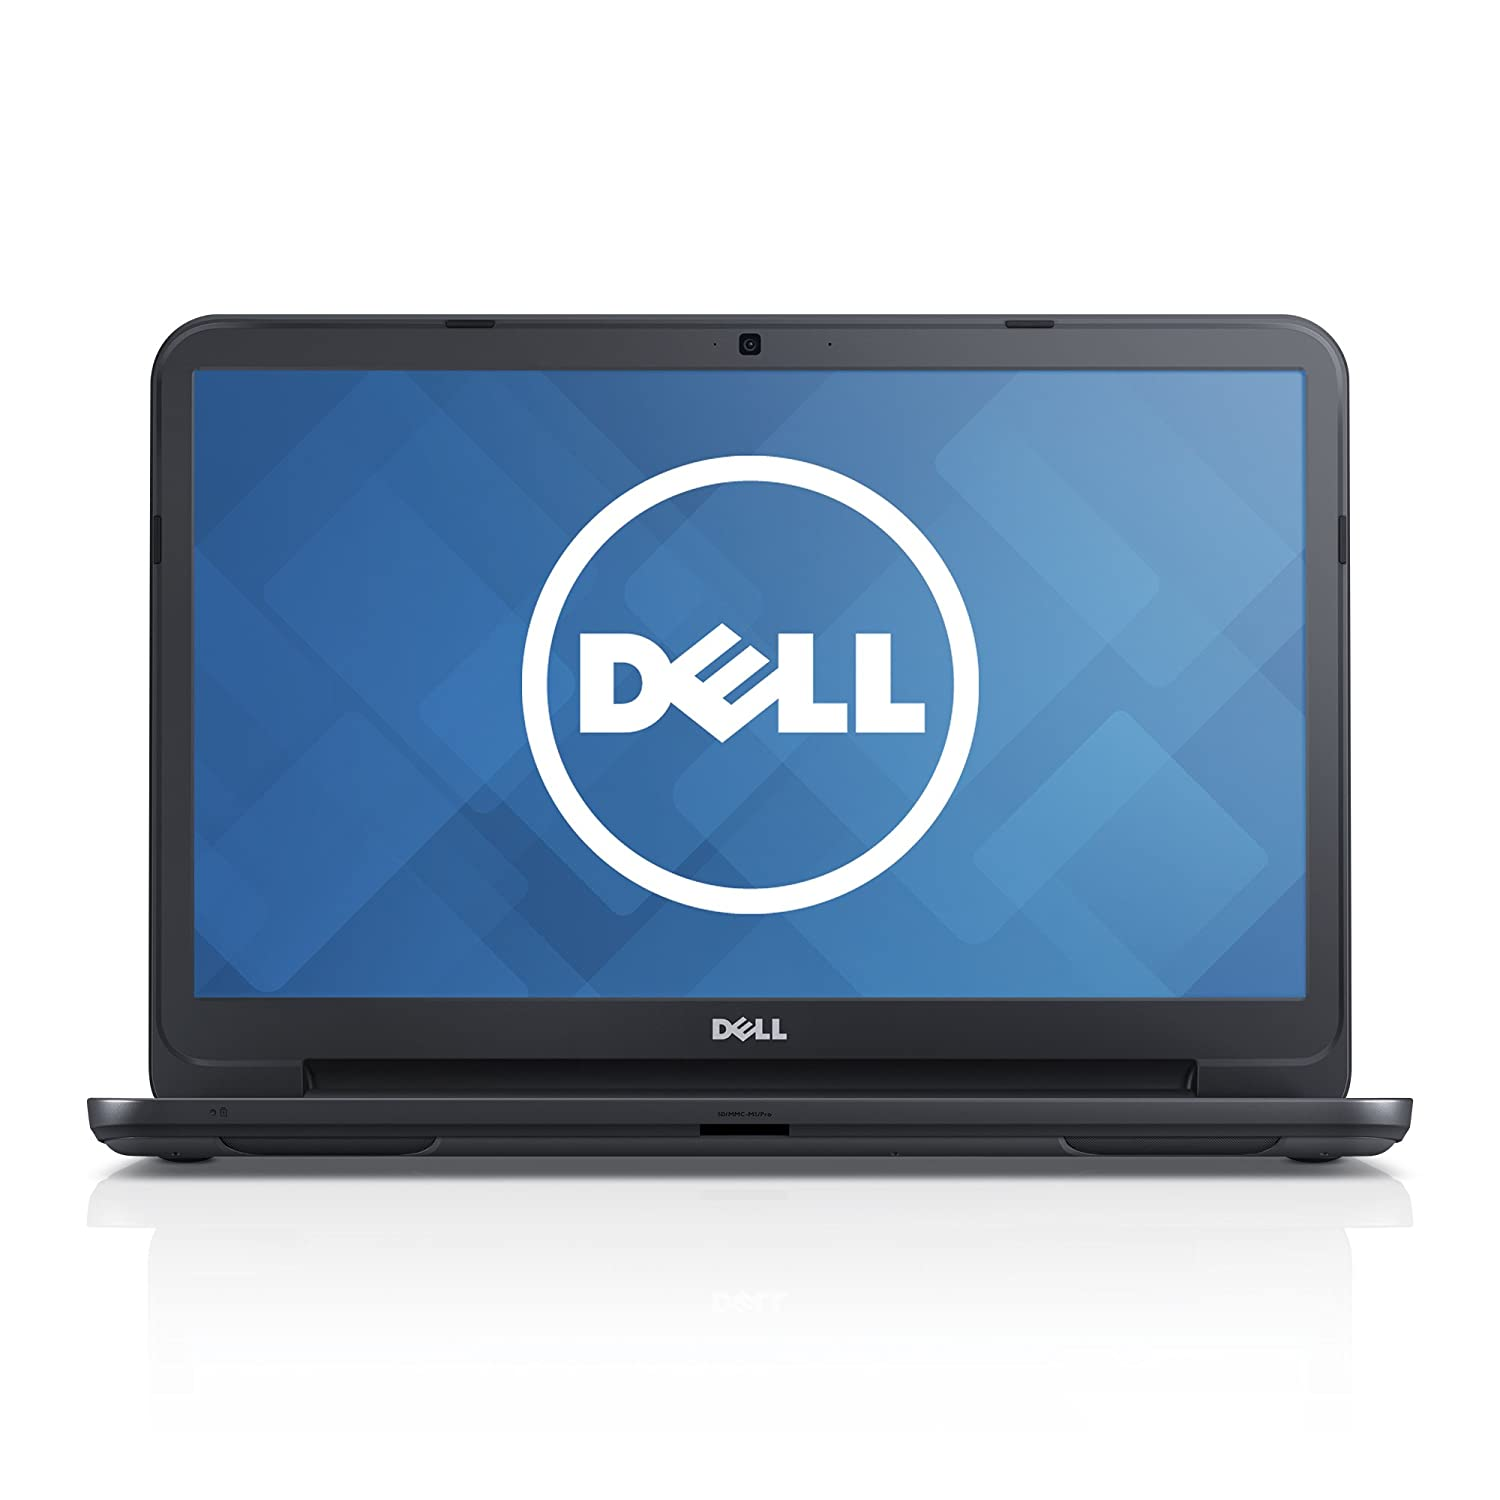 Dell-Inspiron-15-i3531-3225BK-15-6-in-Laptop-Intel-Pentium-Processor-4GB-RAM-